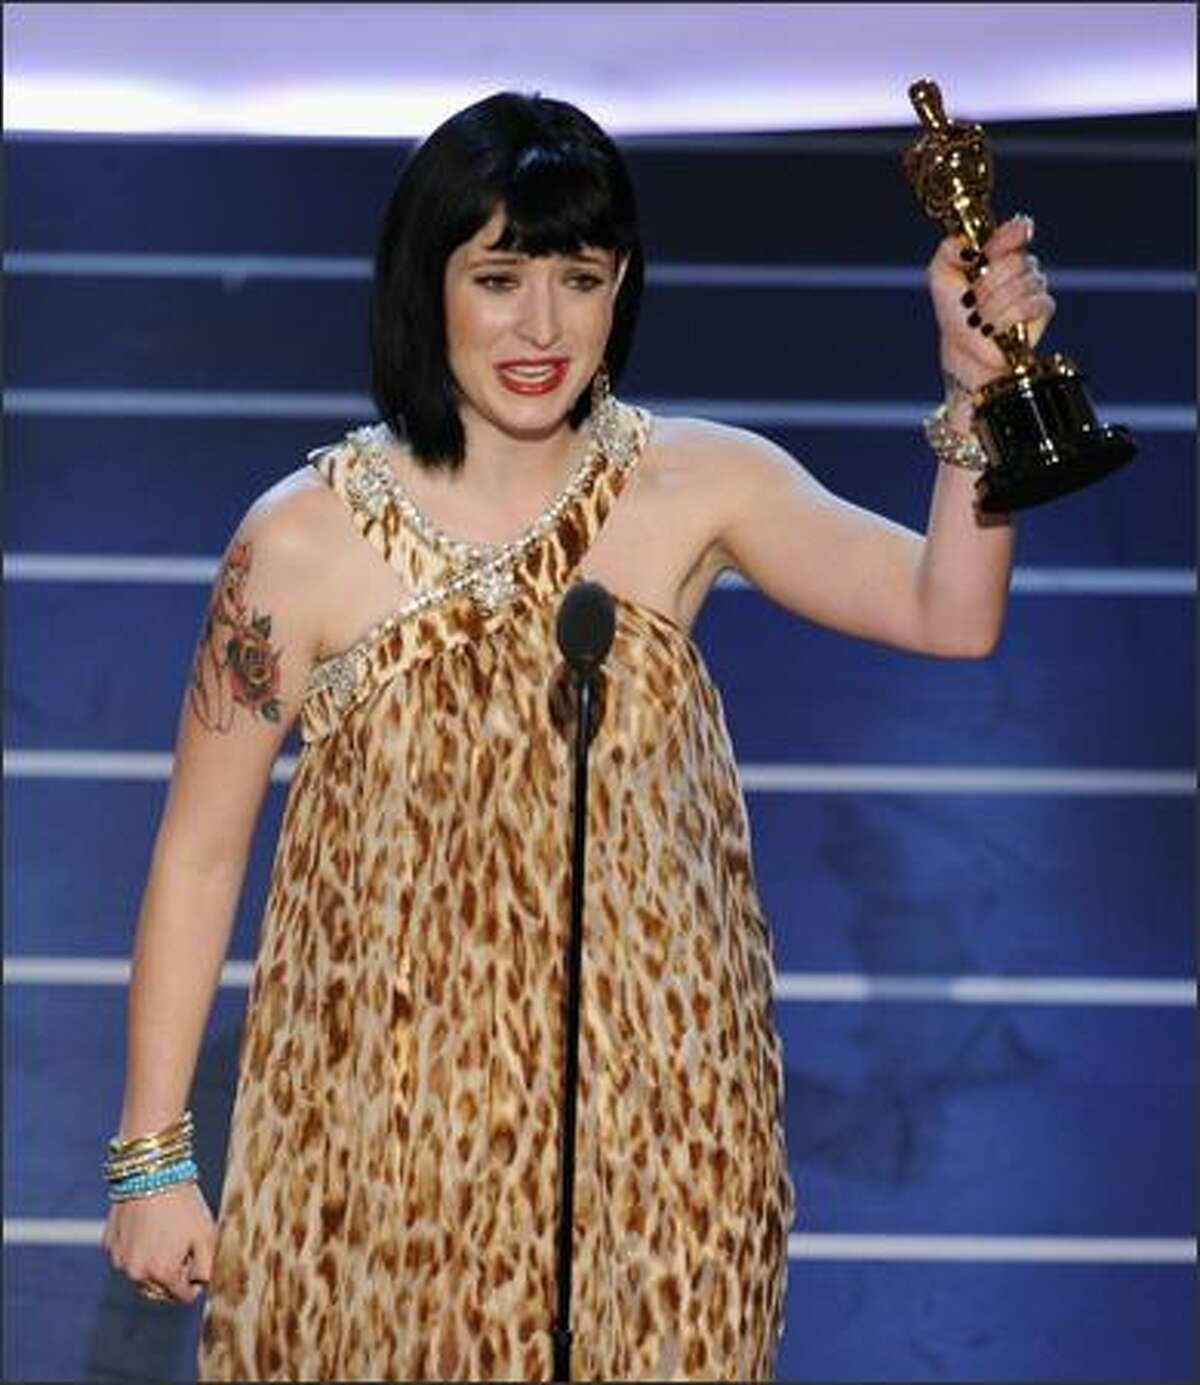 Writer Diablo Cody accepts the Oscar for best original screenplay for her work on